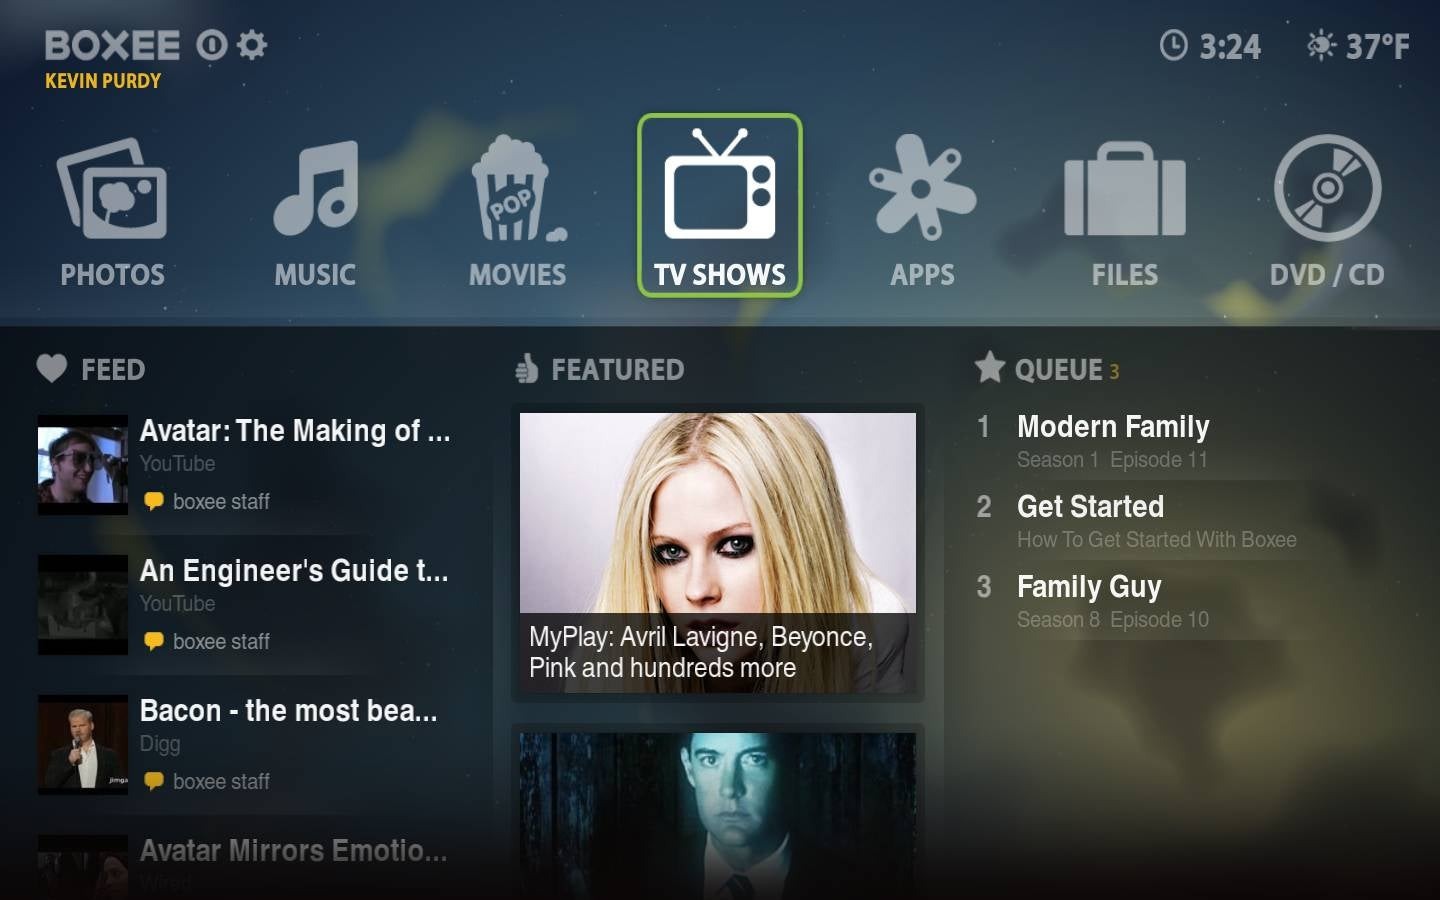 First Look at the Boxee Beta